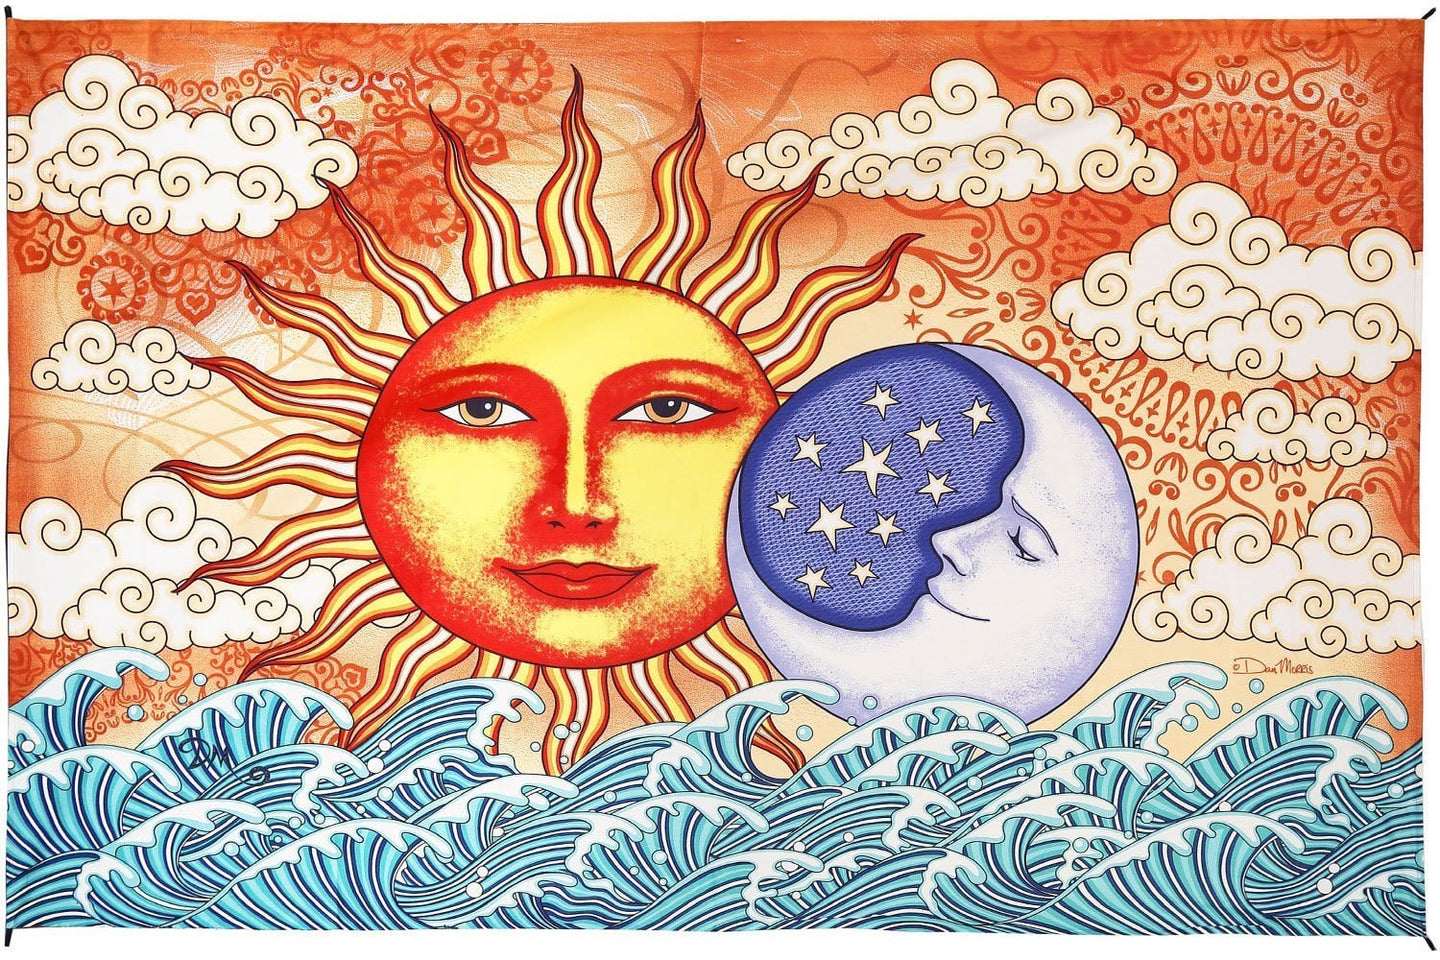 Tapestries Dan Morris - Celestial Sun and Moon Ocean - Tapestry 013546